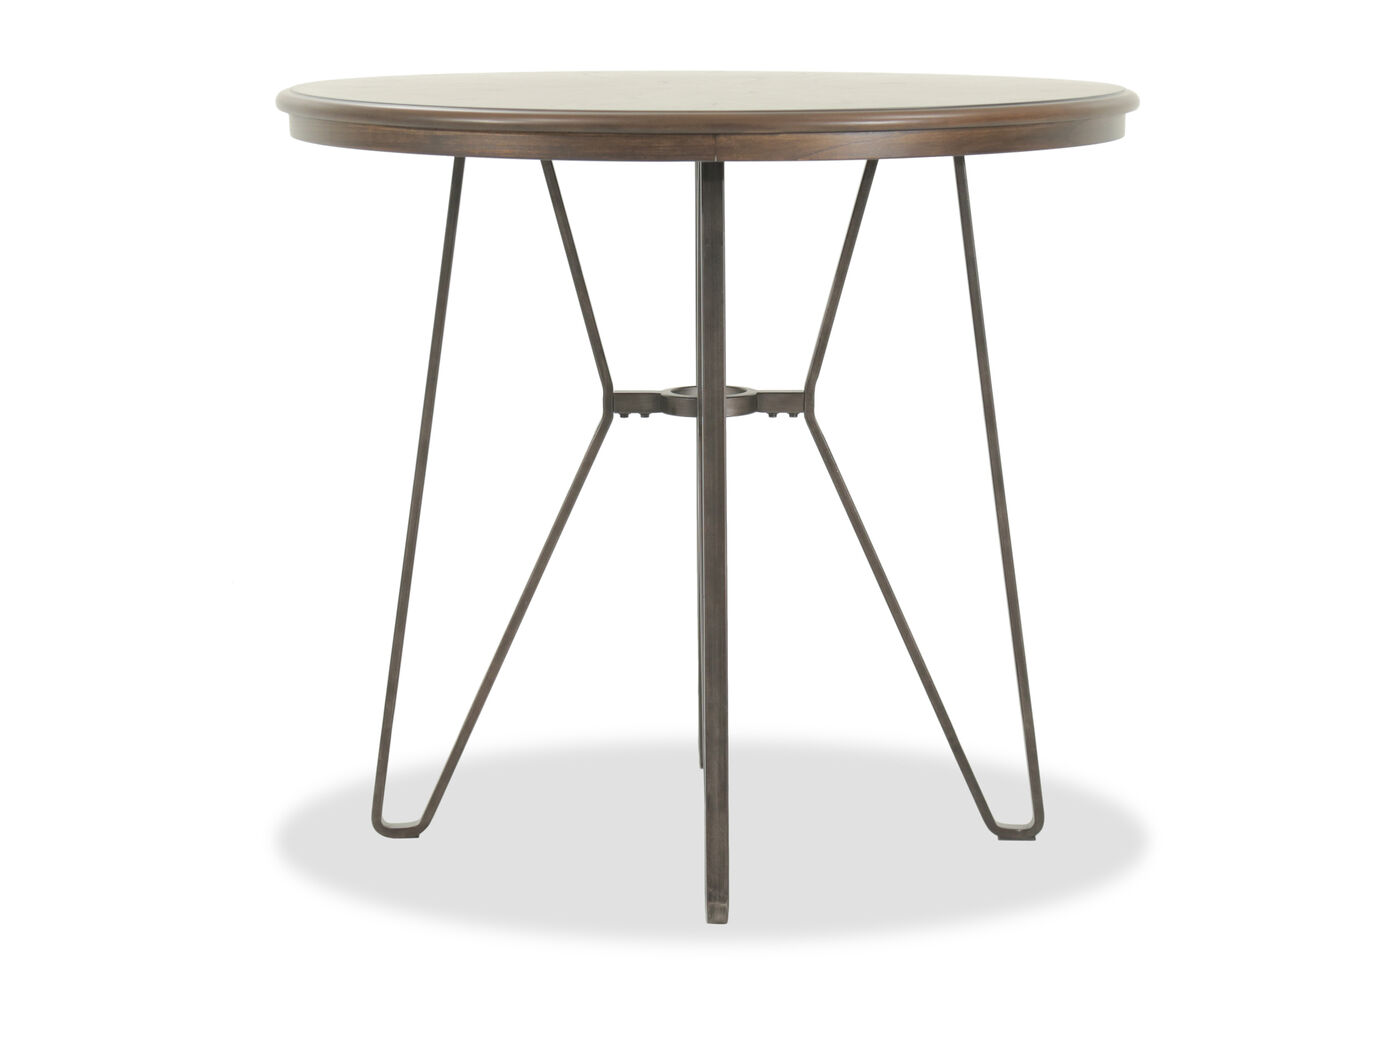 earthy furniture. Images 40\u0026quot; Round Counter Table With Angled Tubular Base In Earthy Brown Furniture